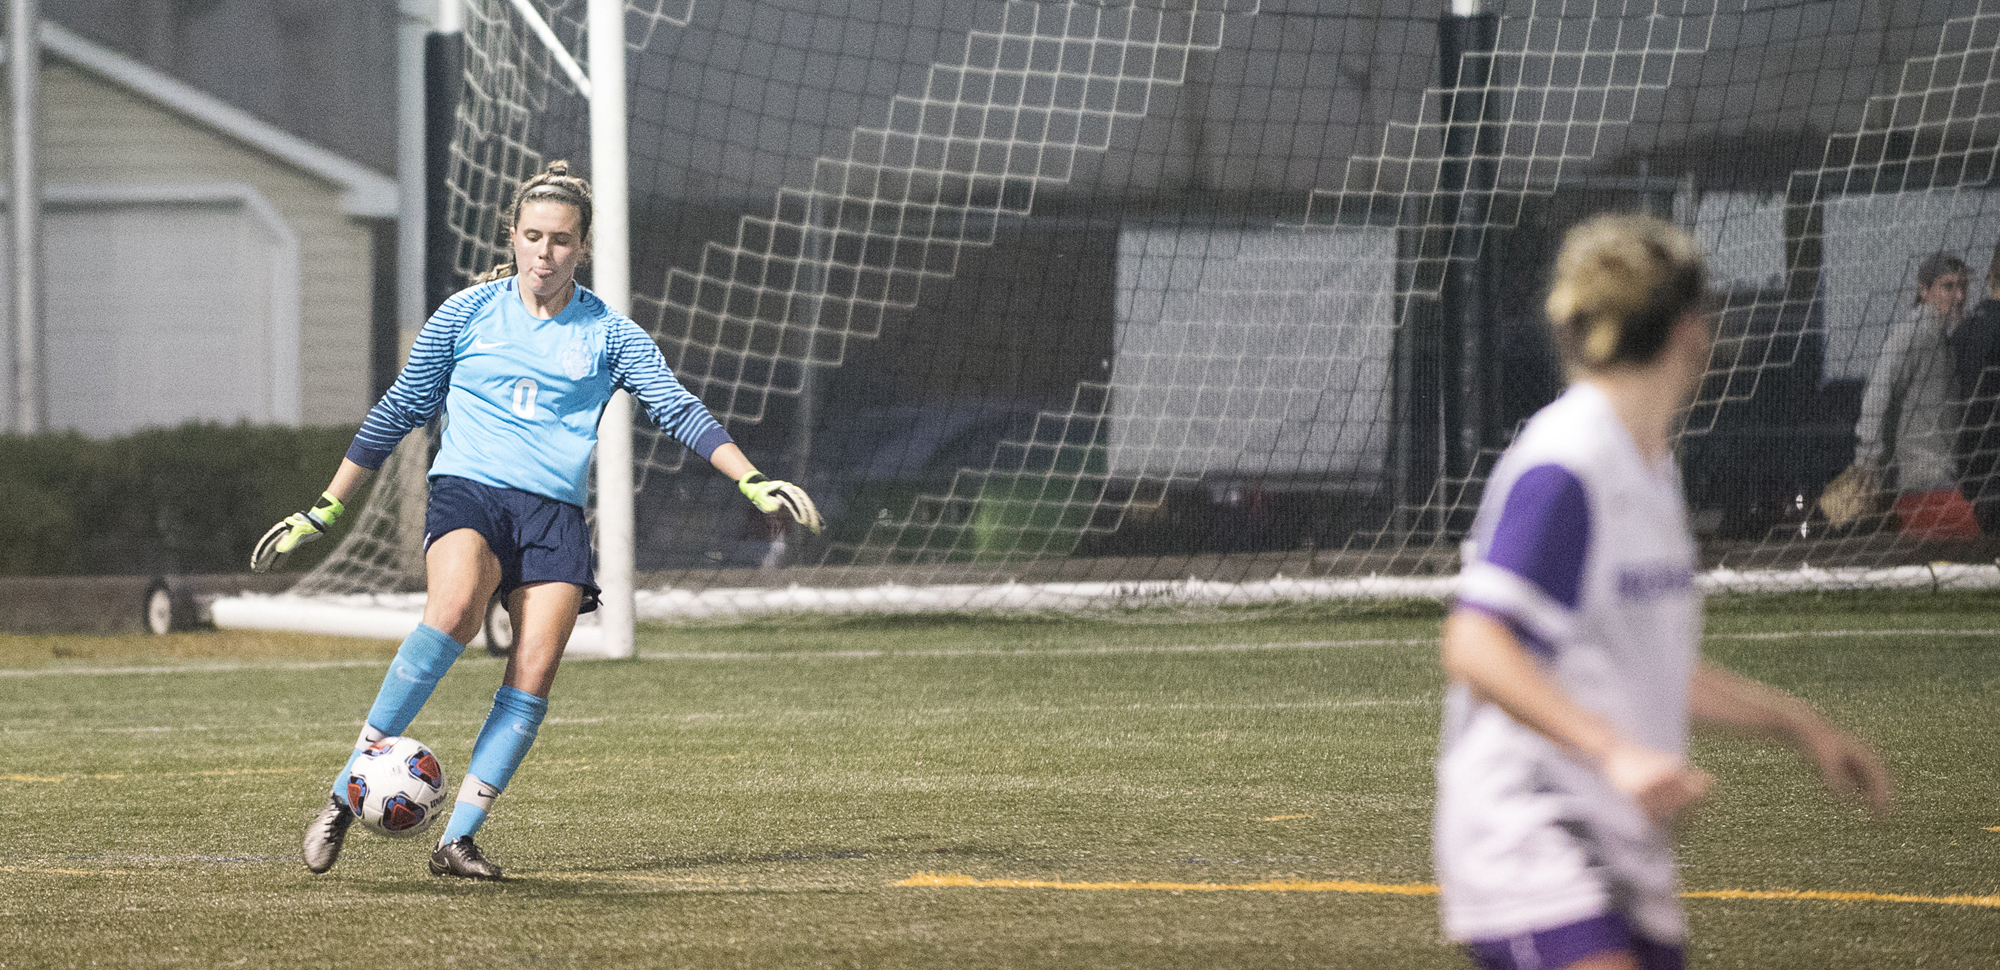 Junior goalkeeper Colleen Berry extended her shutout streak to nearly 435 minutes in the Royals' 0-0 draw with Wilkes on Tuesday.